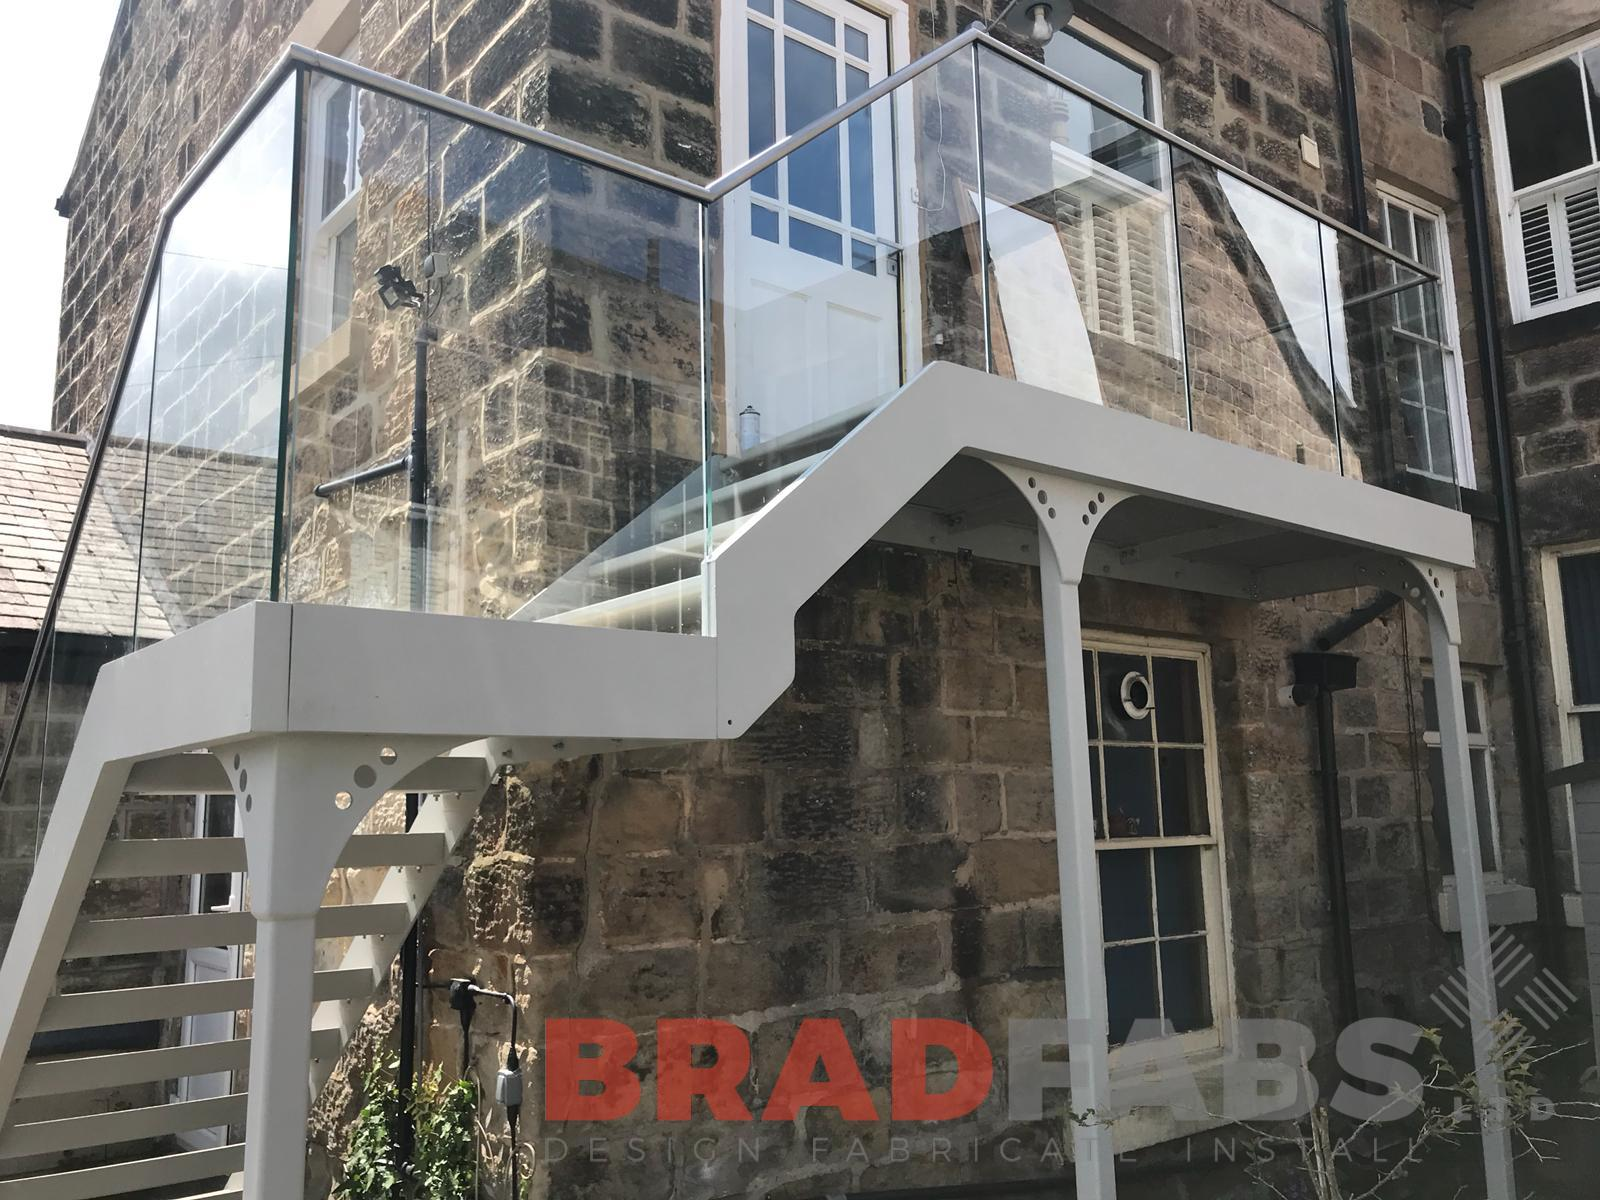 Stunning metal and glass staircase by Bradfabs